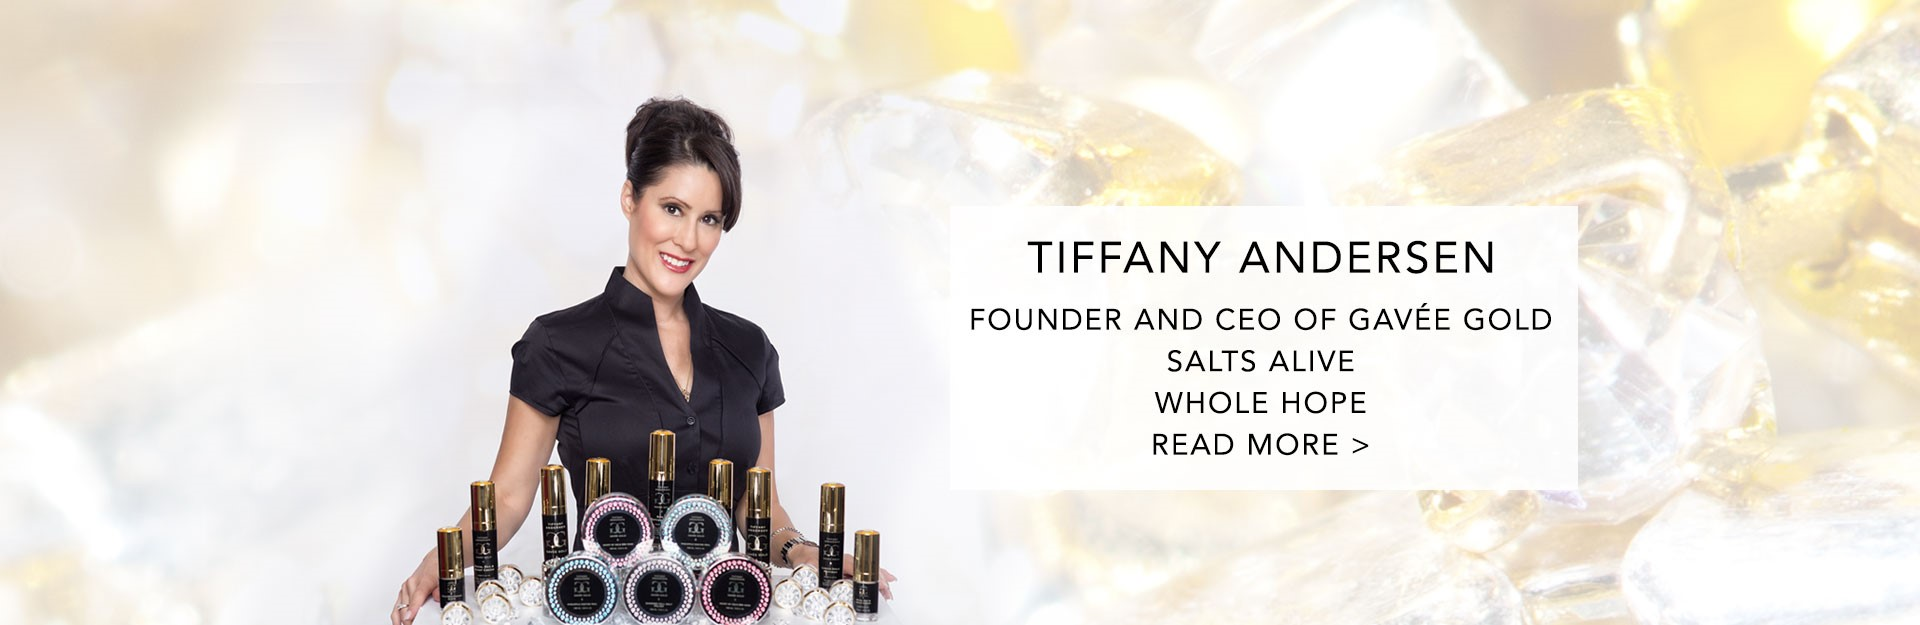 Tiffany Andersen CEO of Gavee Gold and Salts Alive